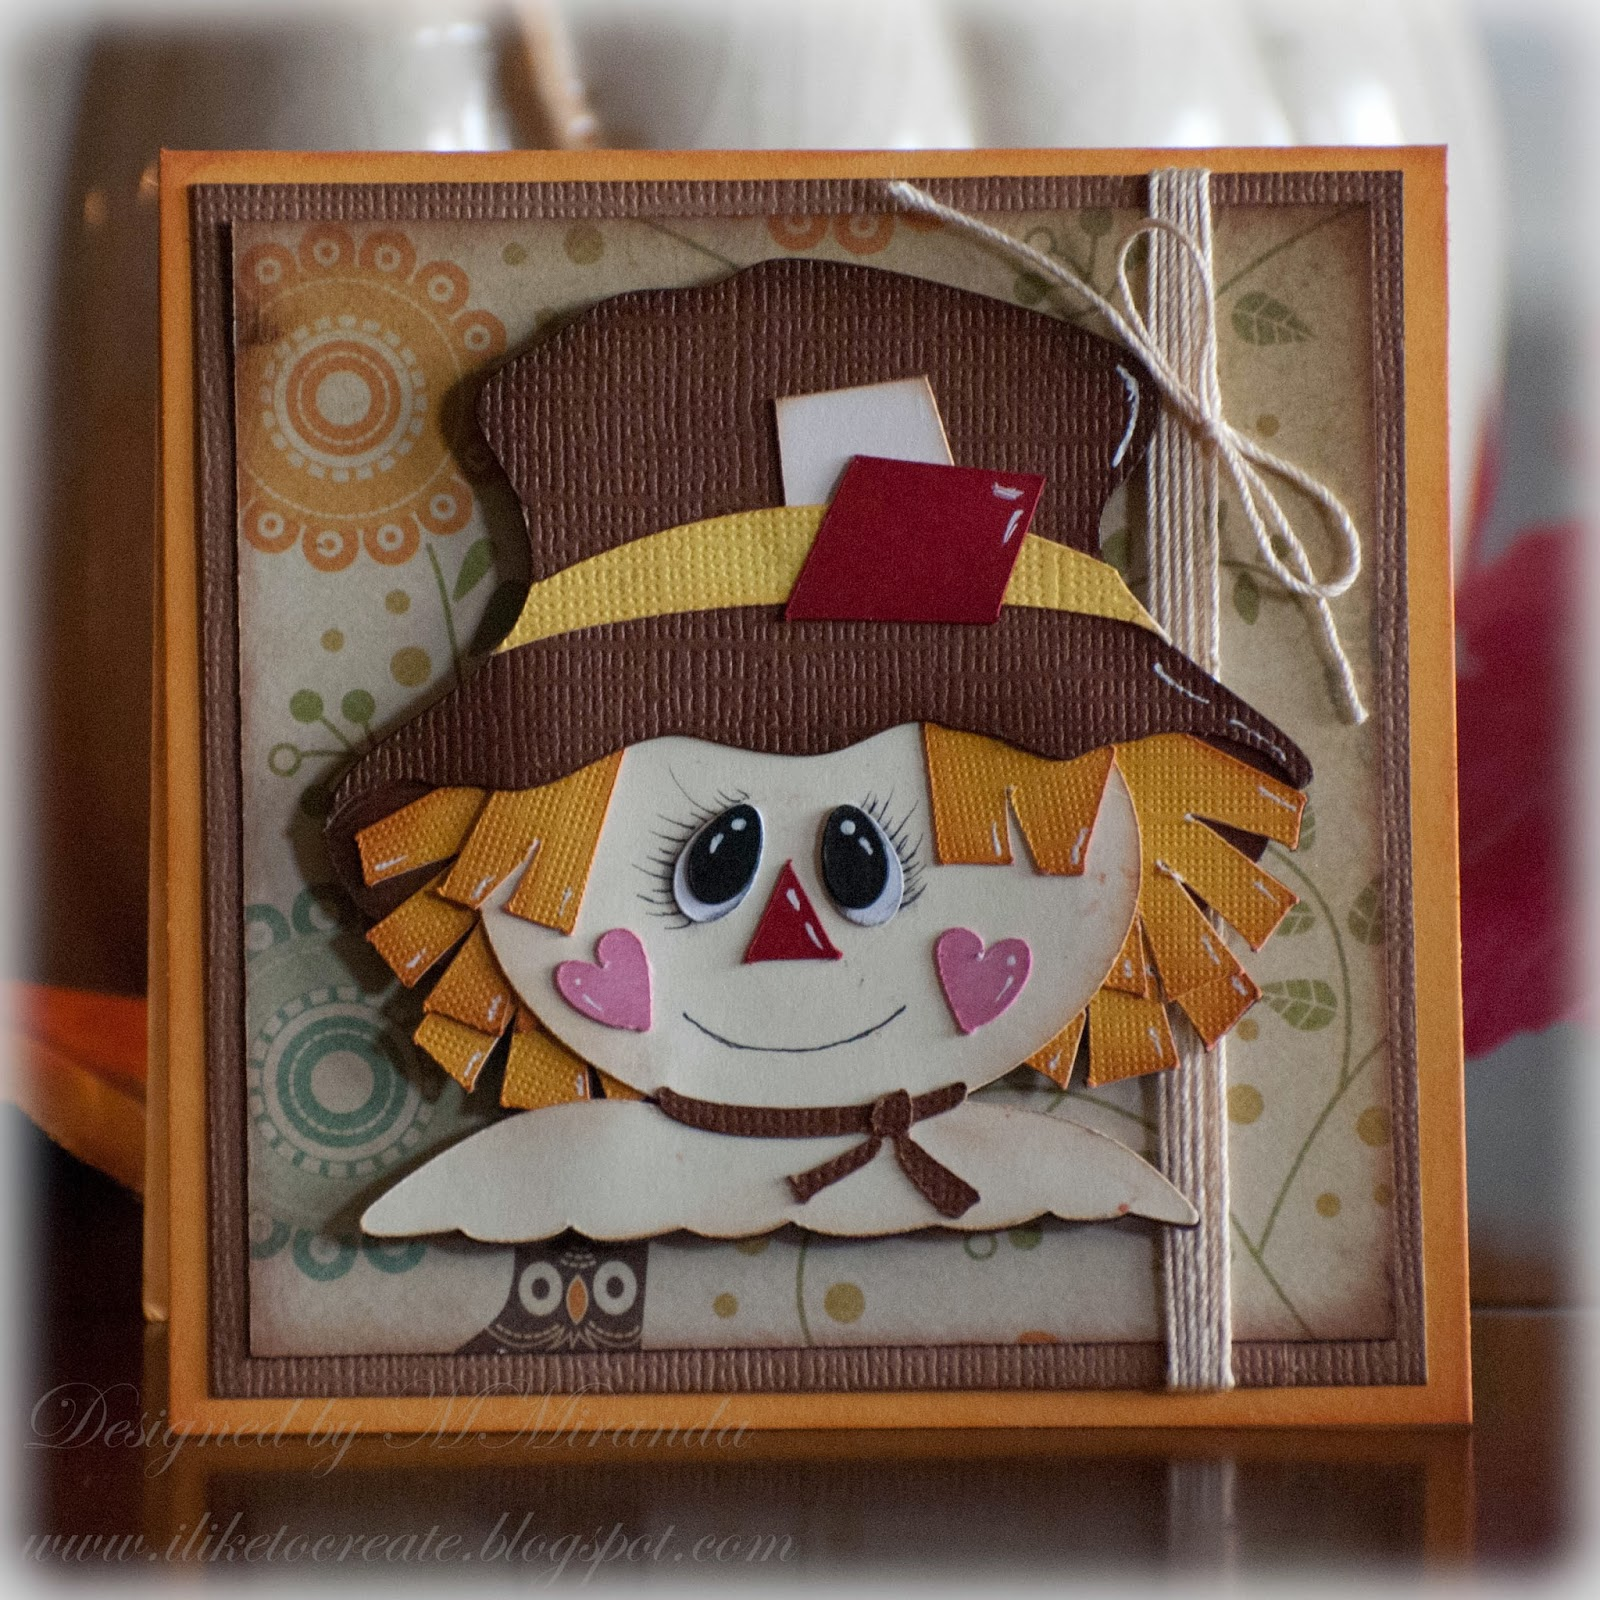 http://iliketocreate.blogspot.com/2013/11/sweet-scarecrow.html